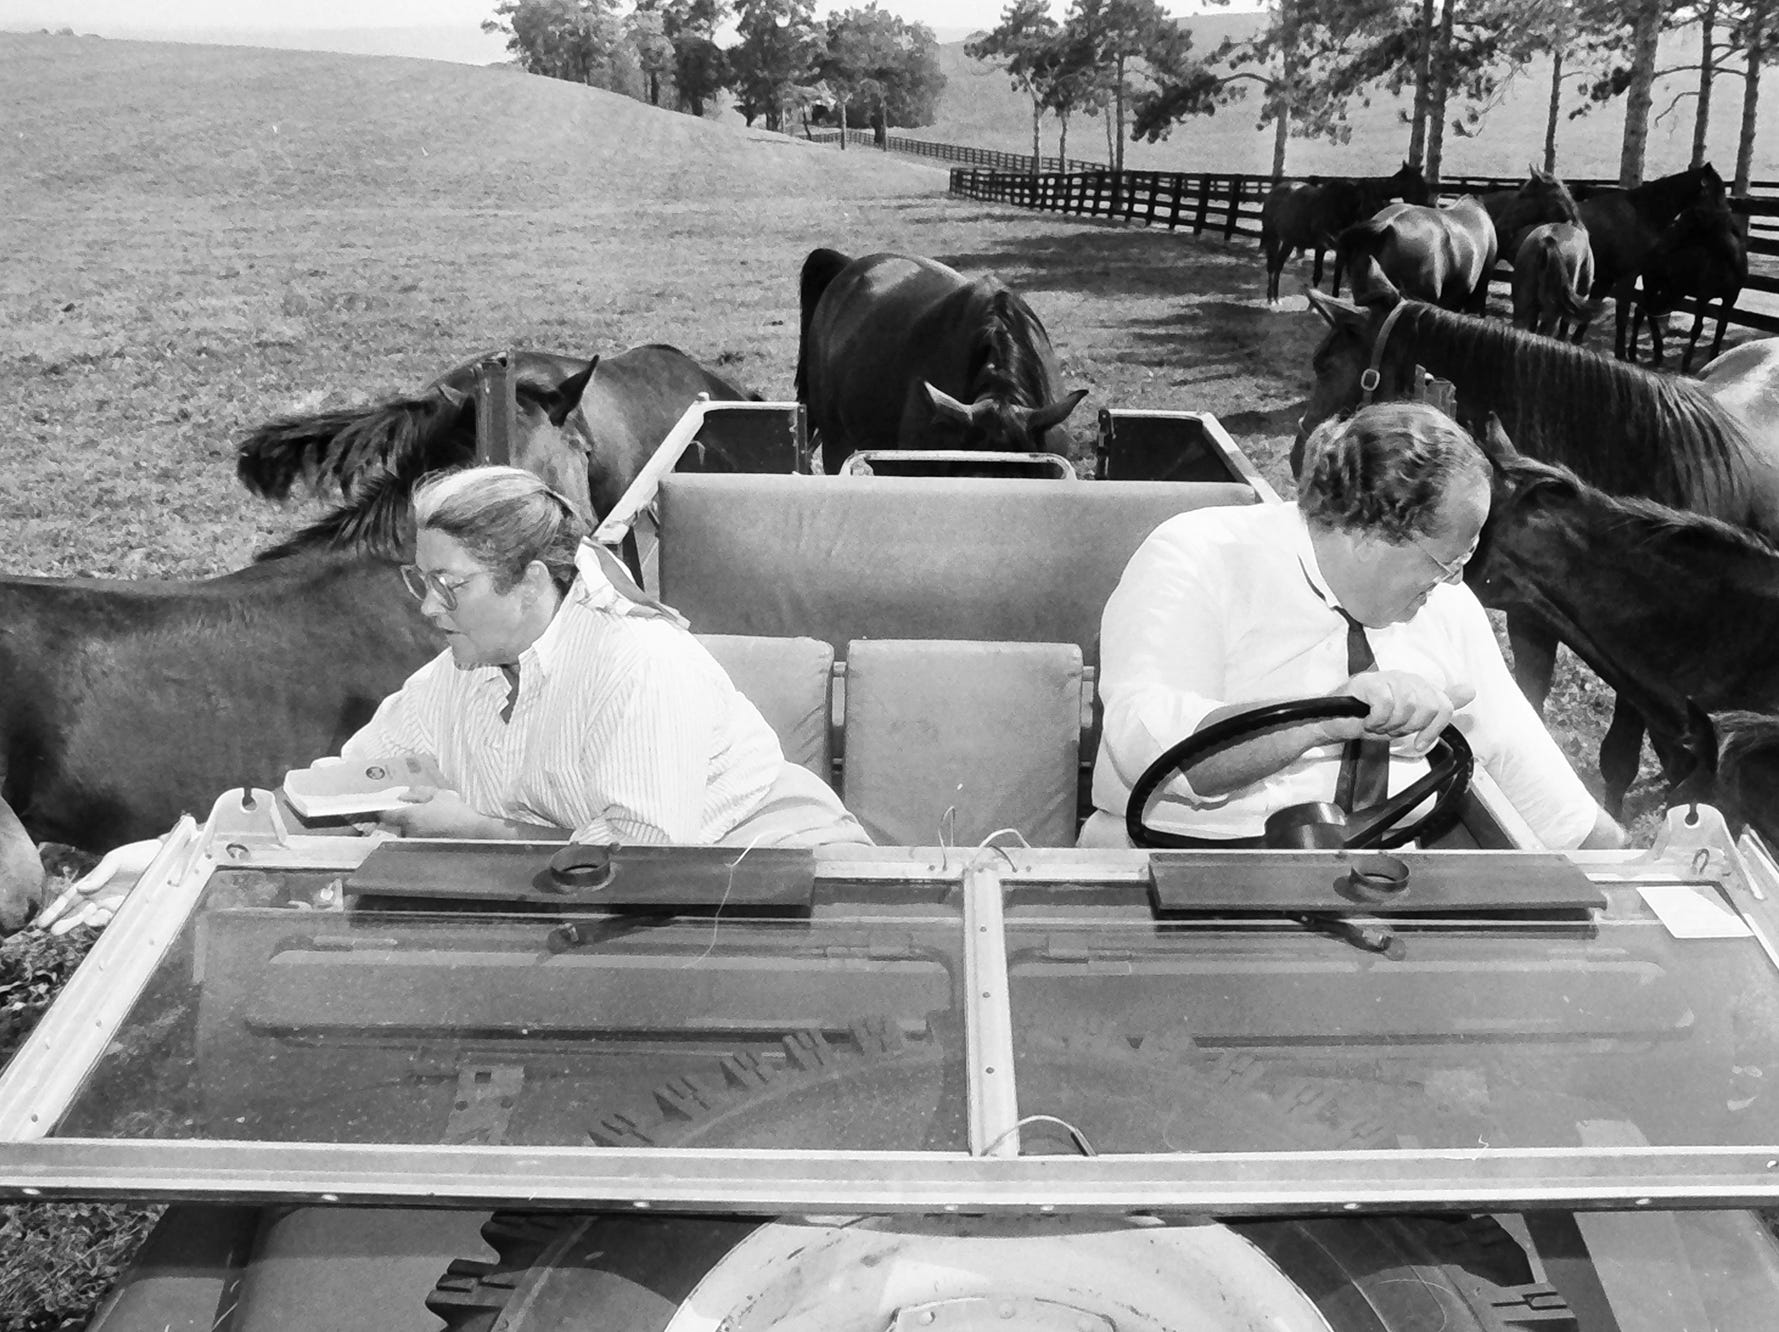 In 1985, people rode with the horses at Lauxmont Farms.